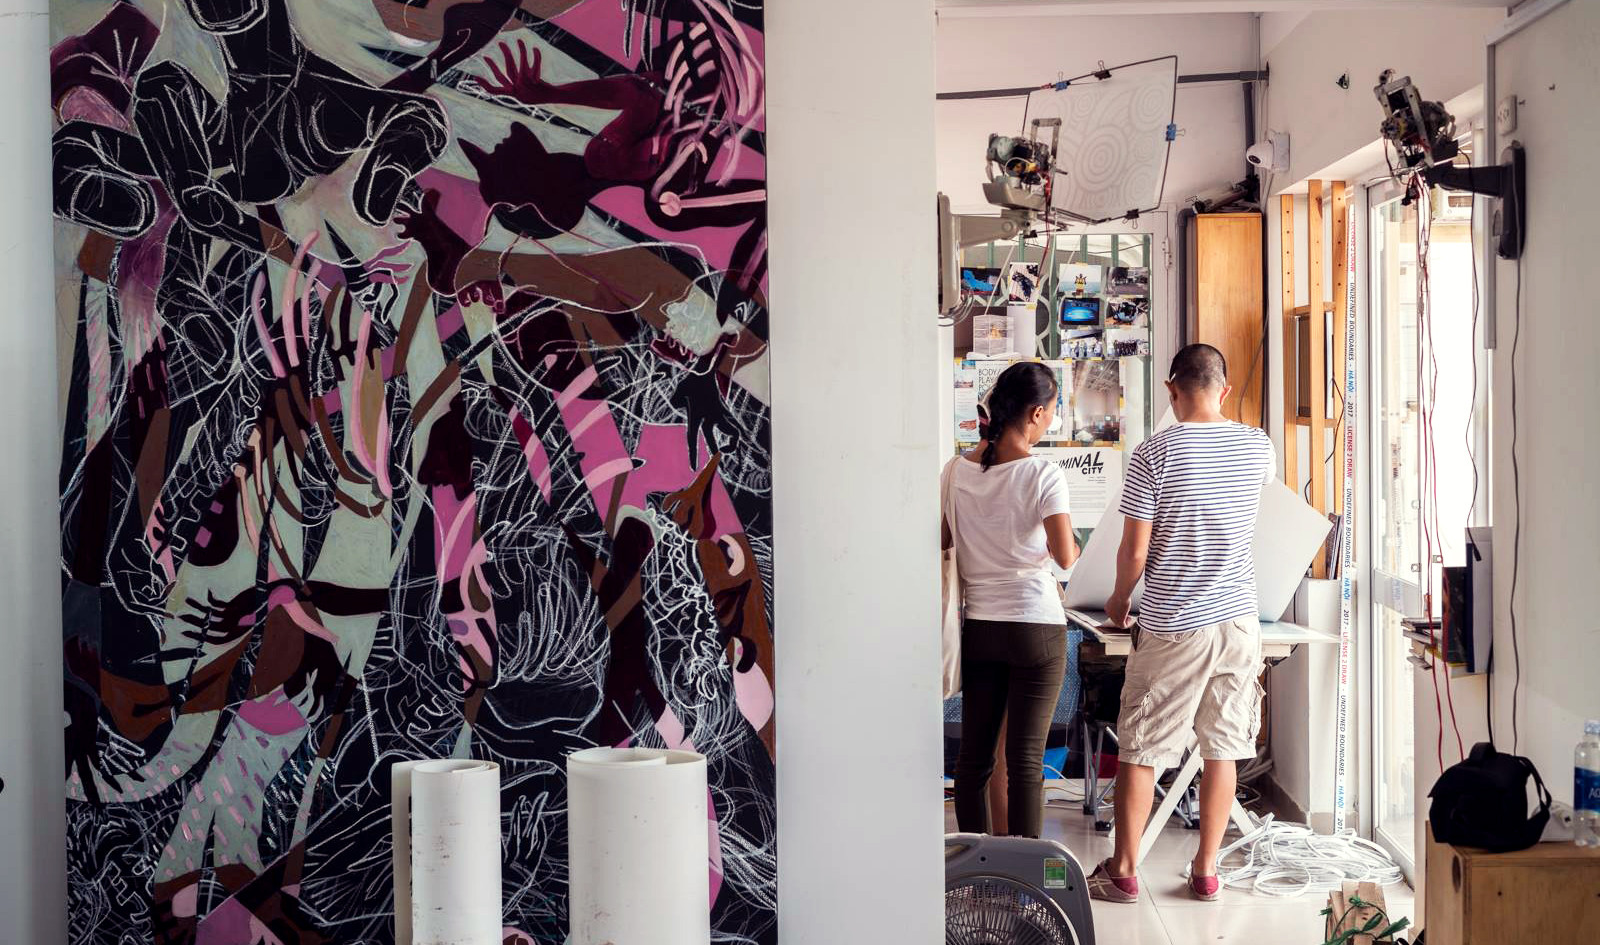 Guests exploring a shared studio space of 4 local artists.   Photo by: Dave Lemke